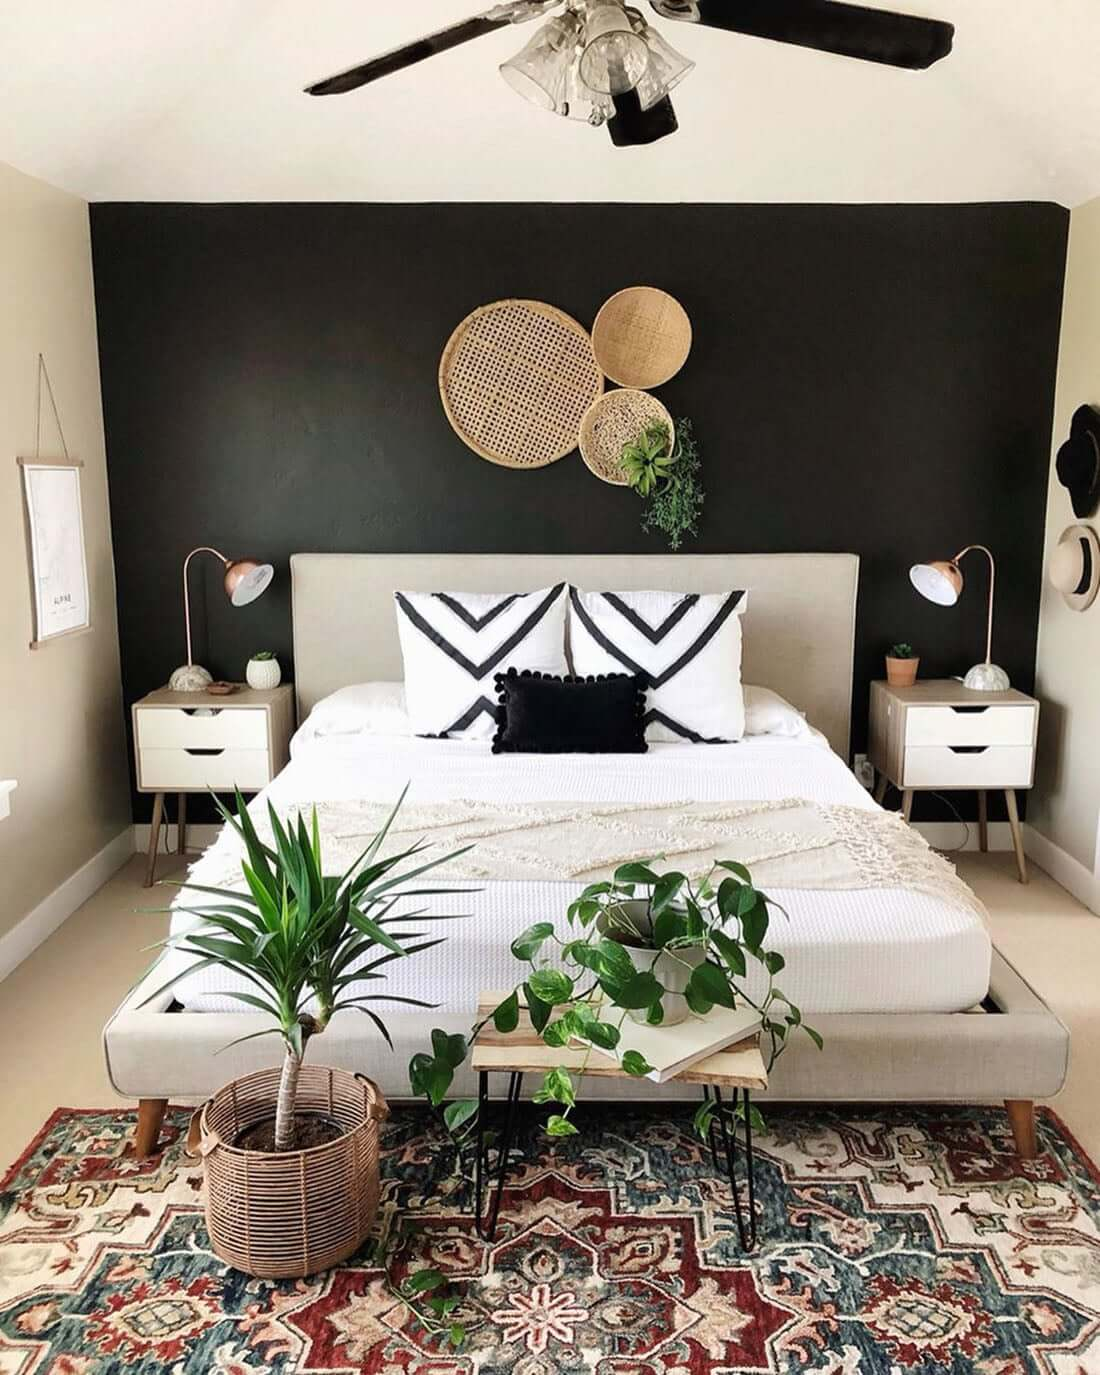 Breezy Bohemian Black and White Bedroom